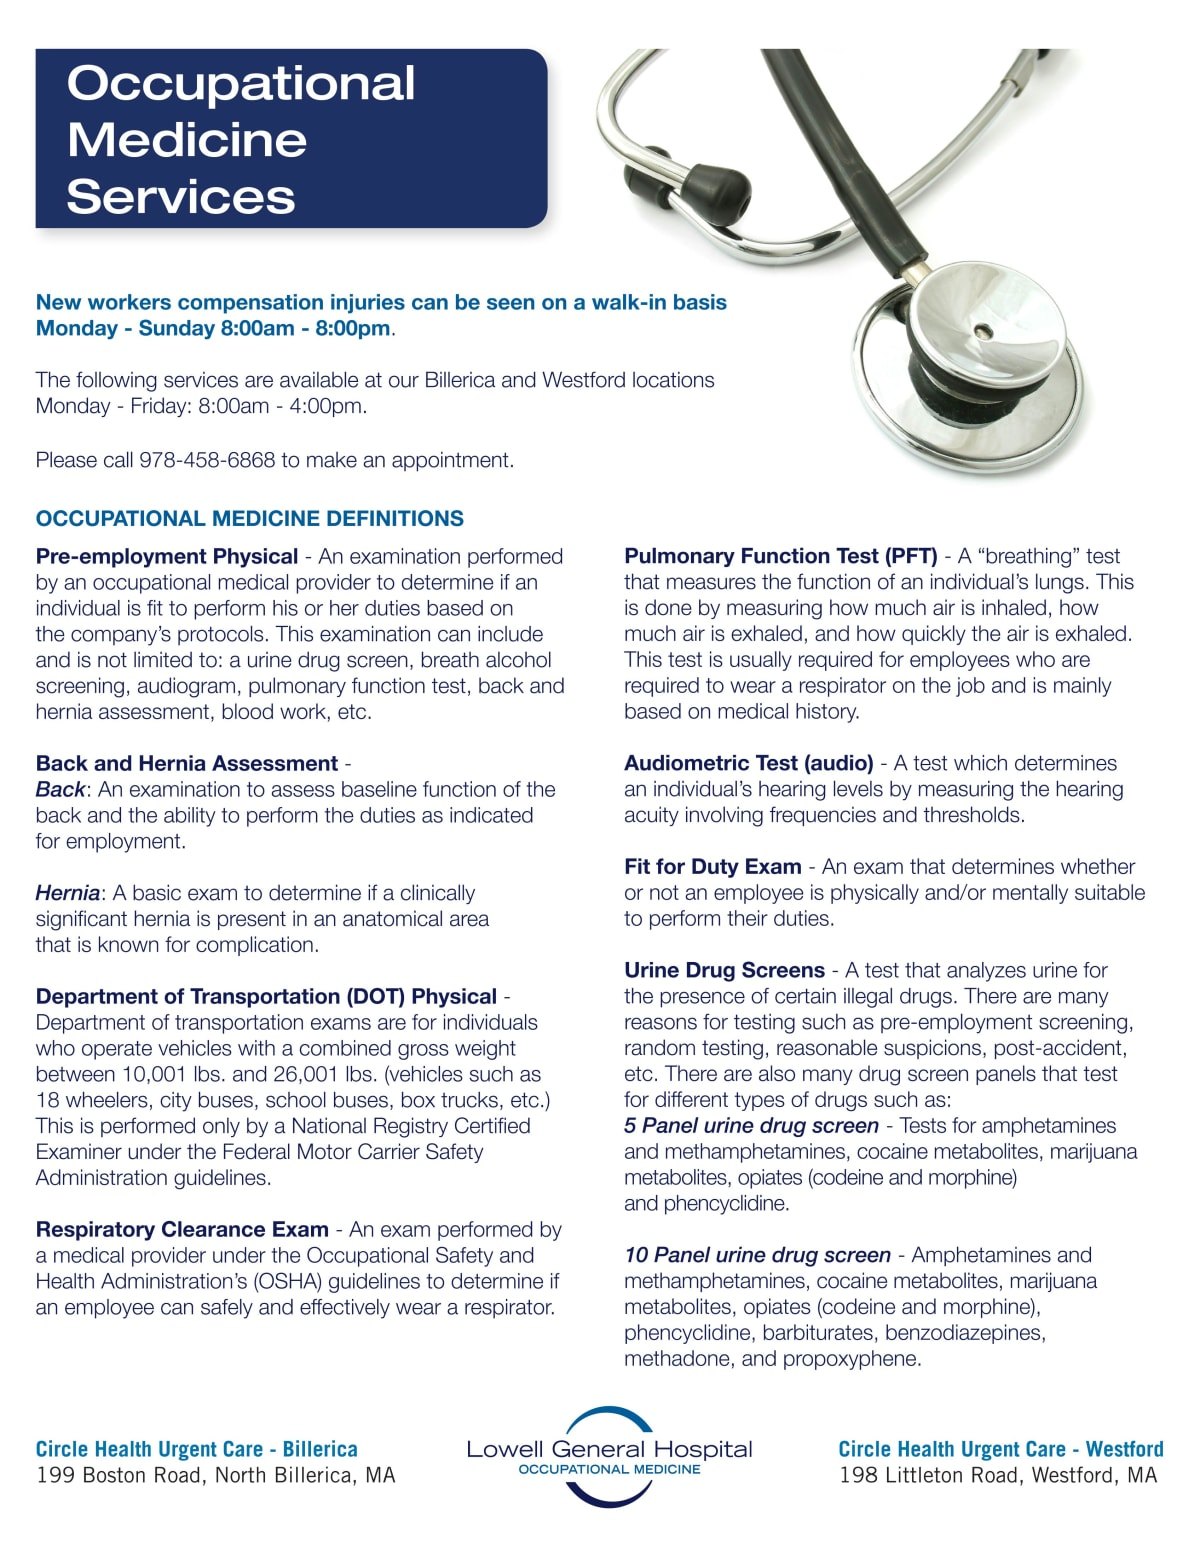 Occupational Medicine flyer // Lowell General Hospital